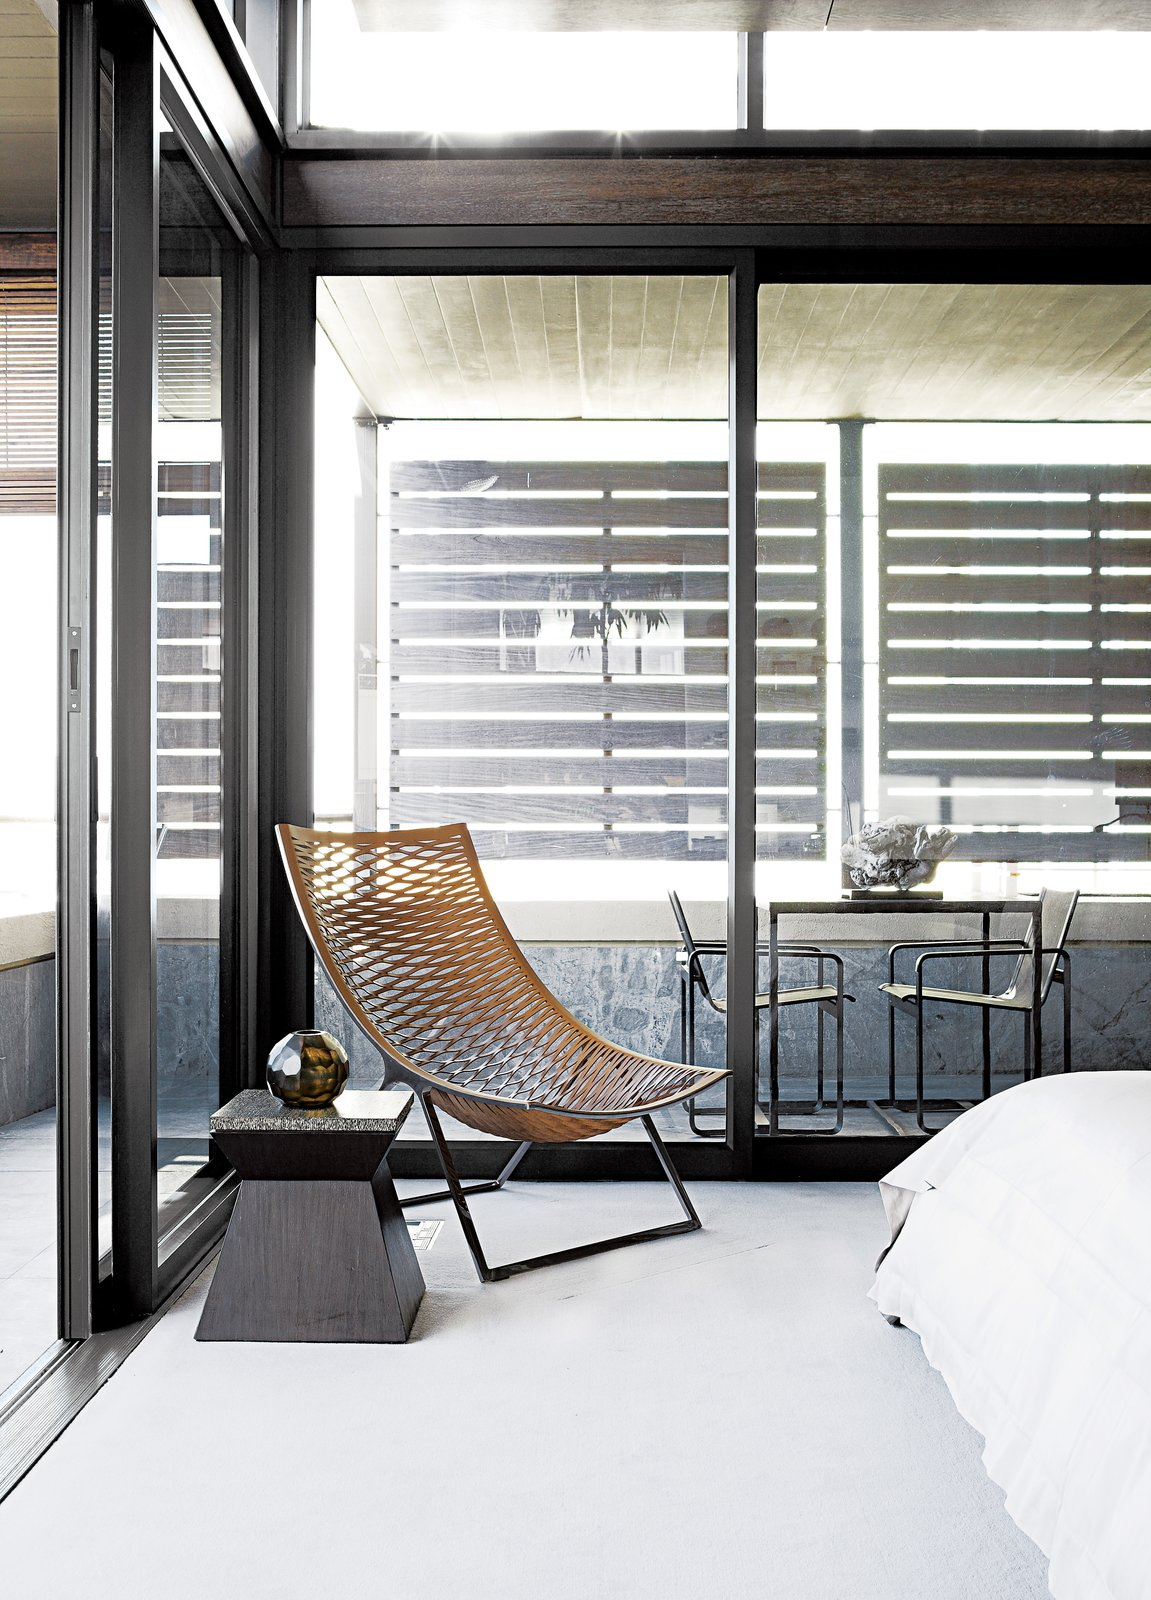 """In the master bedroom, a woven Loom chair by Matteograssi is paired with a wood-and-marble side table from Cécile & Boyd's. Sliding glass doors lead to the screened outdoor veranda with a custom bronze table and Neutra Batyline chairs from Marlanteak. """"The outside-inside flow was important to us, as the apartment is all about views and using the veranda spaces,"""" says designer Geordi De Sousa Costa.  Bedrooms by Dwell from A Sophisticated Penthouse in Cape Town"""